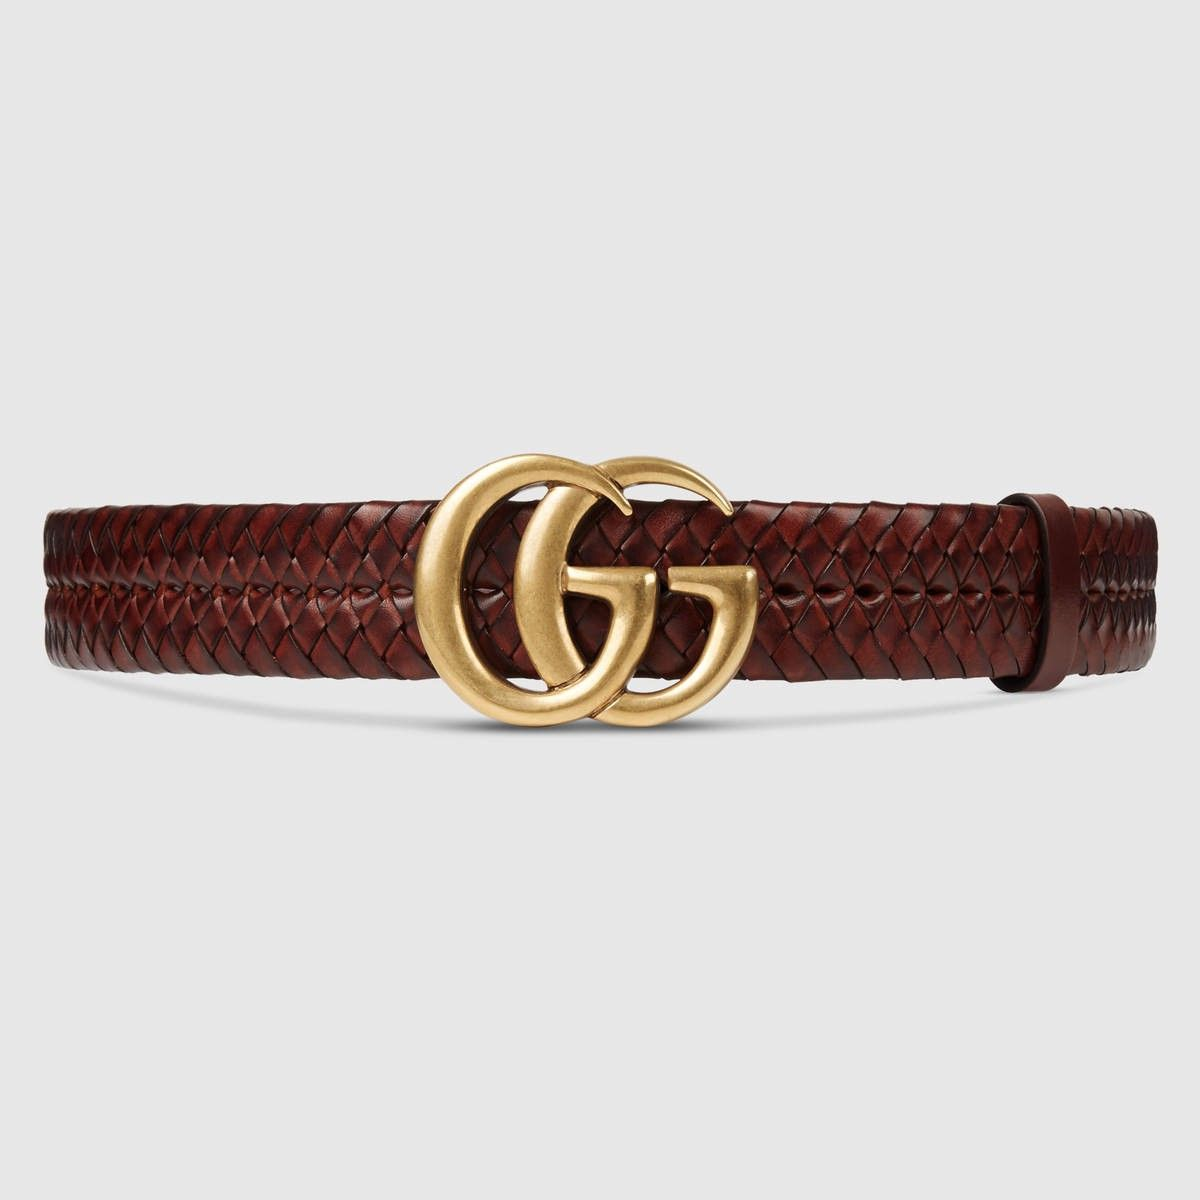 02325b6dd57 GUCCI Braided belt with Double G buckle - brown leather.  gucci ...